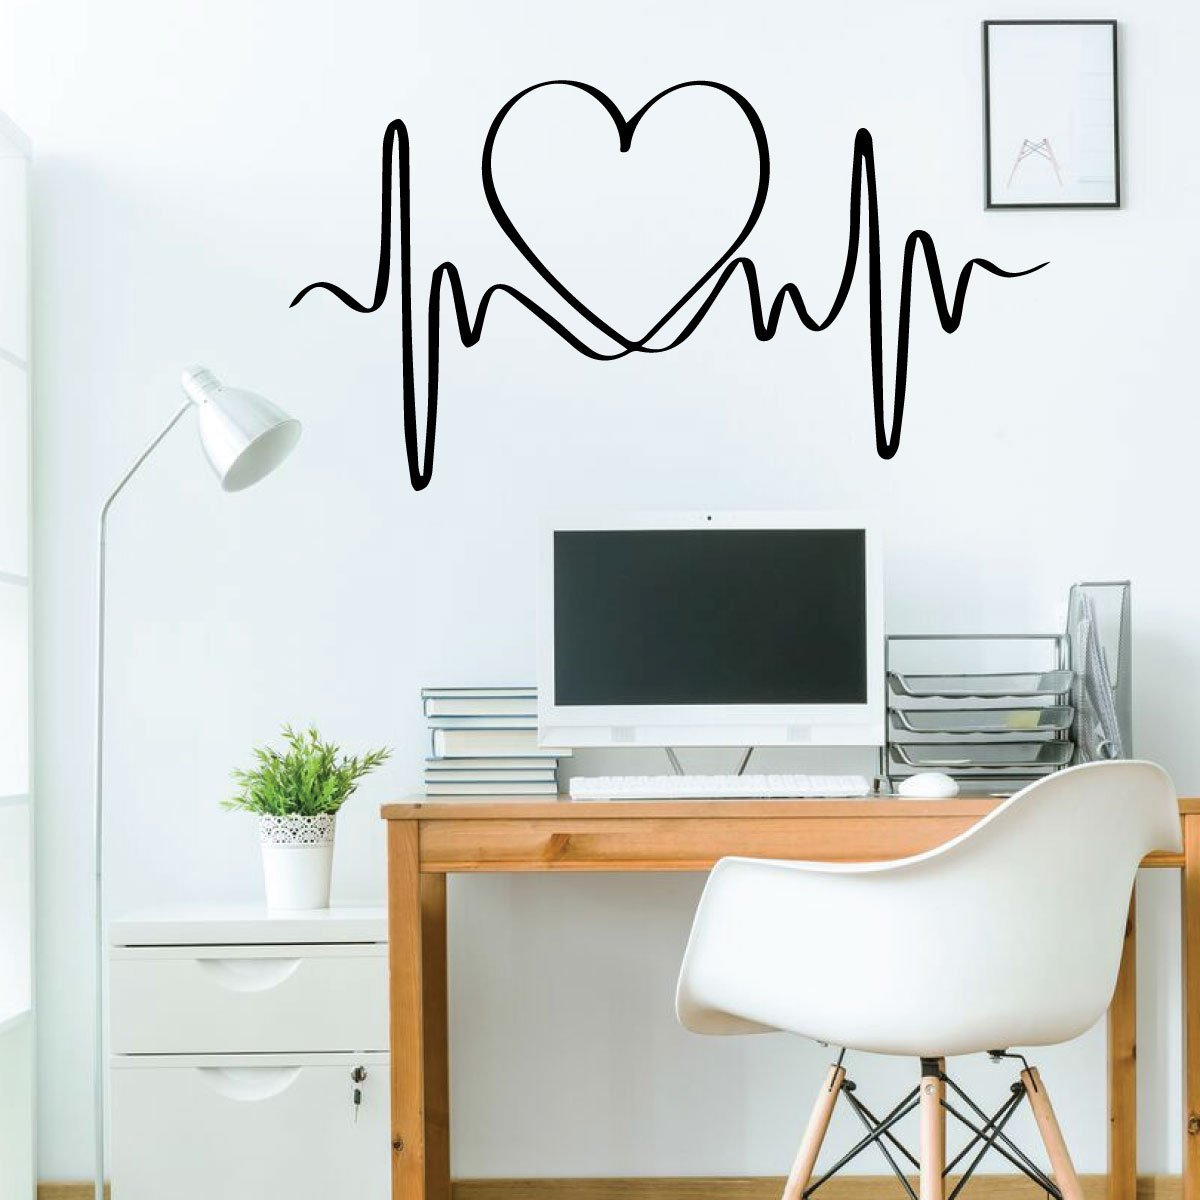 Wall Decal for Girls - Heart Beat Decor - Vinyl Sticker for Children's Room or Playroom Decoration